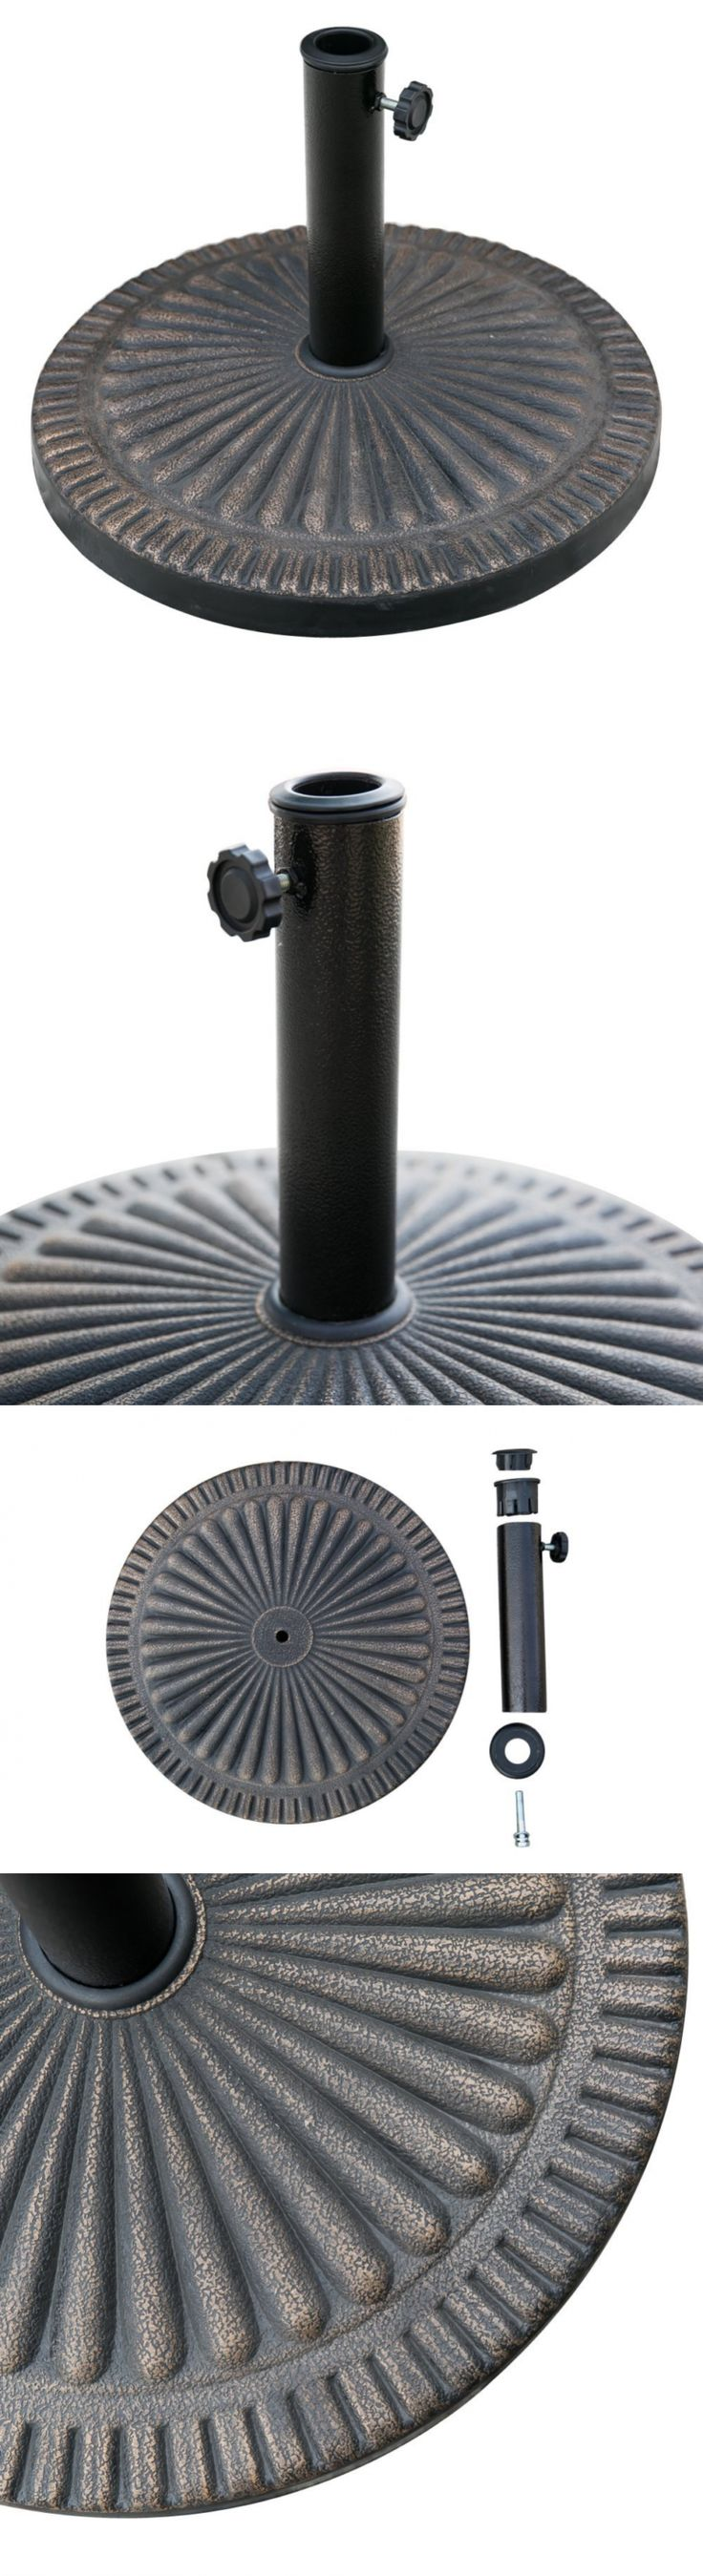 umbrella stands chopetree 193 round patio umbrella stand market umbrella base - Patio Umbrella Base